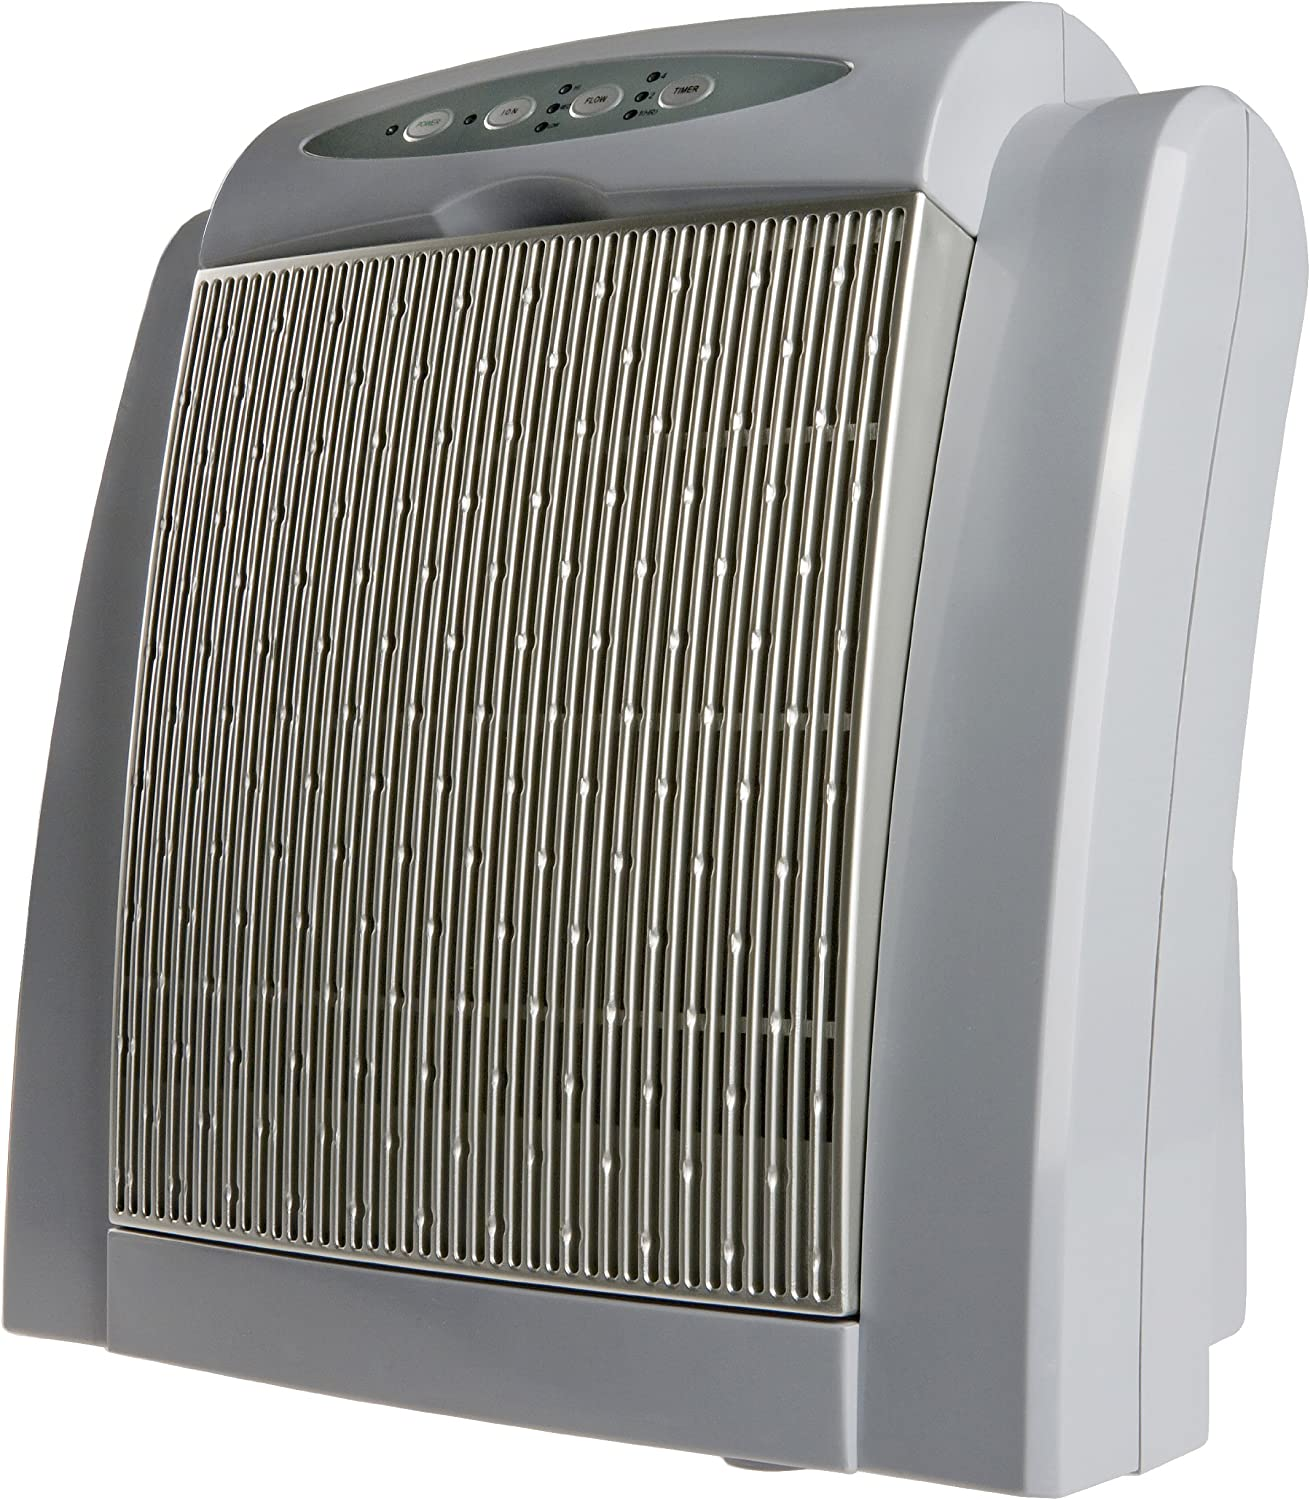 Medisana Air Purifier APS-Purificador de Aire, Color Gris, 38 W, plástico: Amazon.es: Hogar